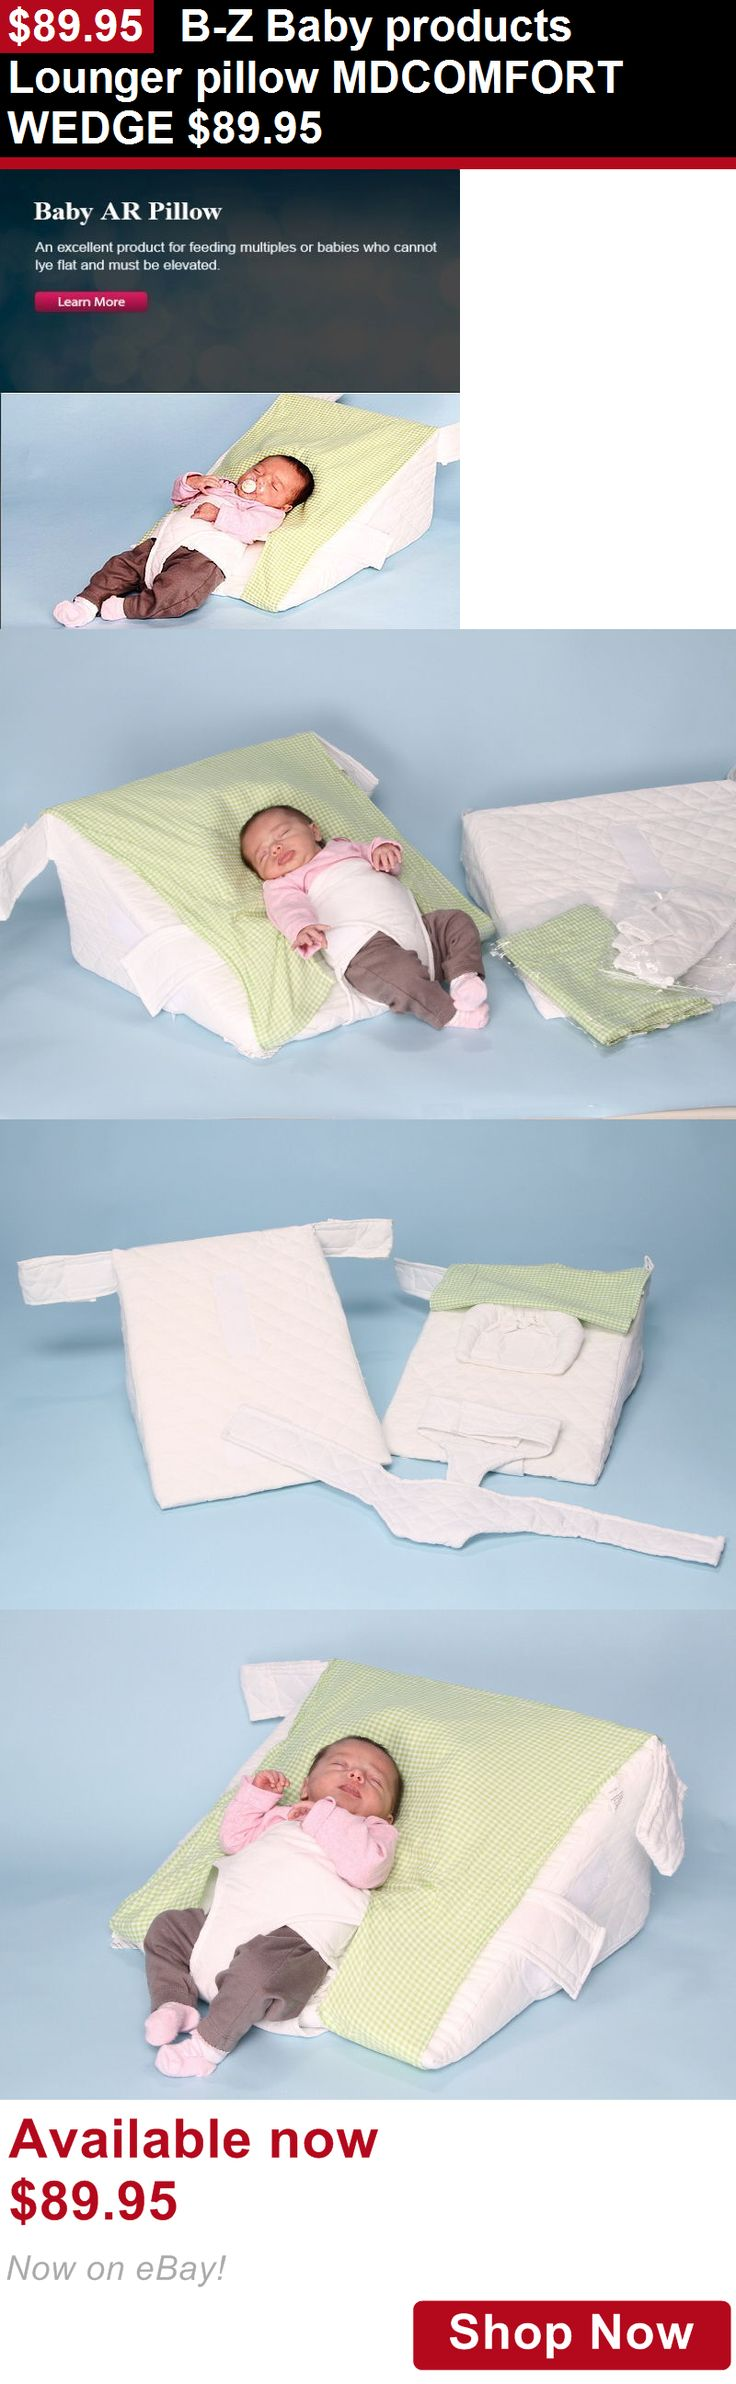 Baby Safety Sleep Positioners: B-Z Baby Products Lounger Pillow Mdcomfort Wedge $89.95 BUY IT NOW ONLY: $89.95